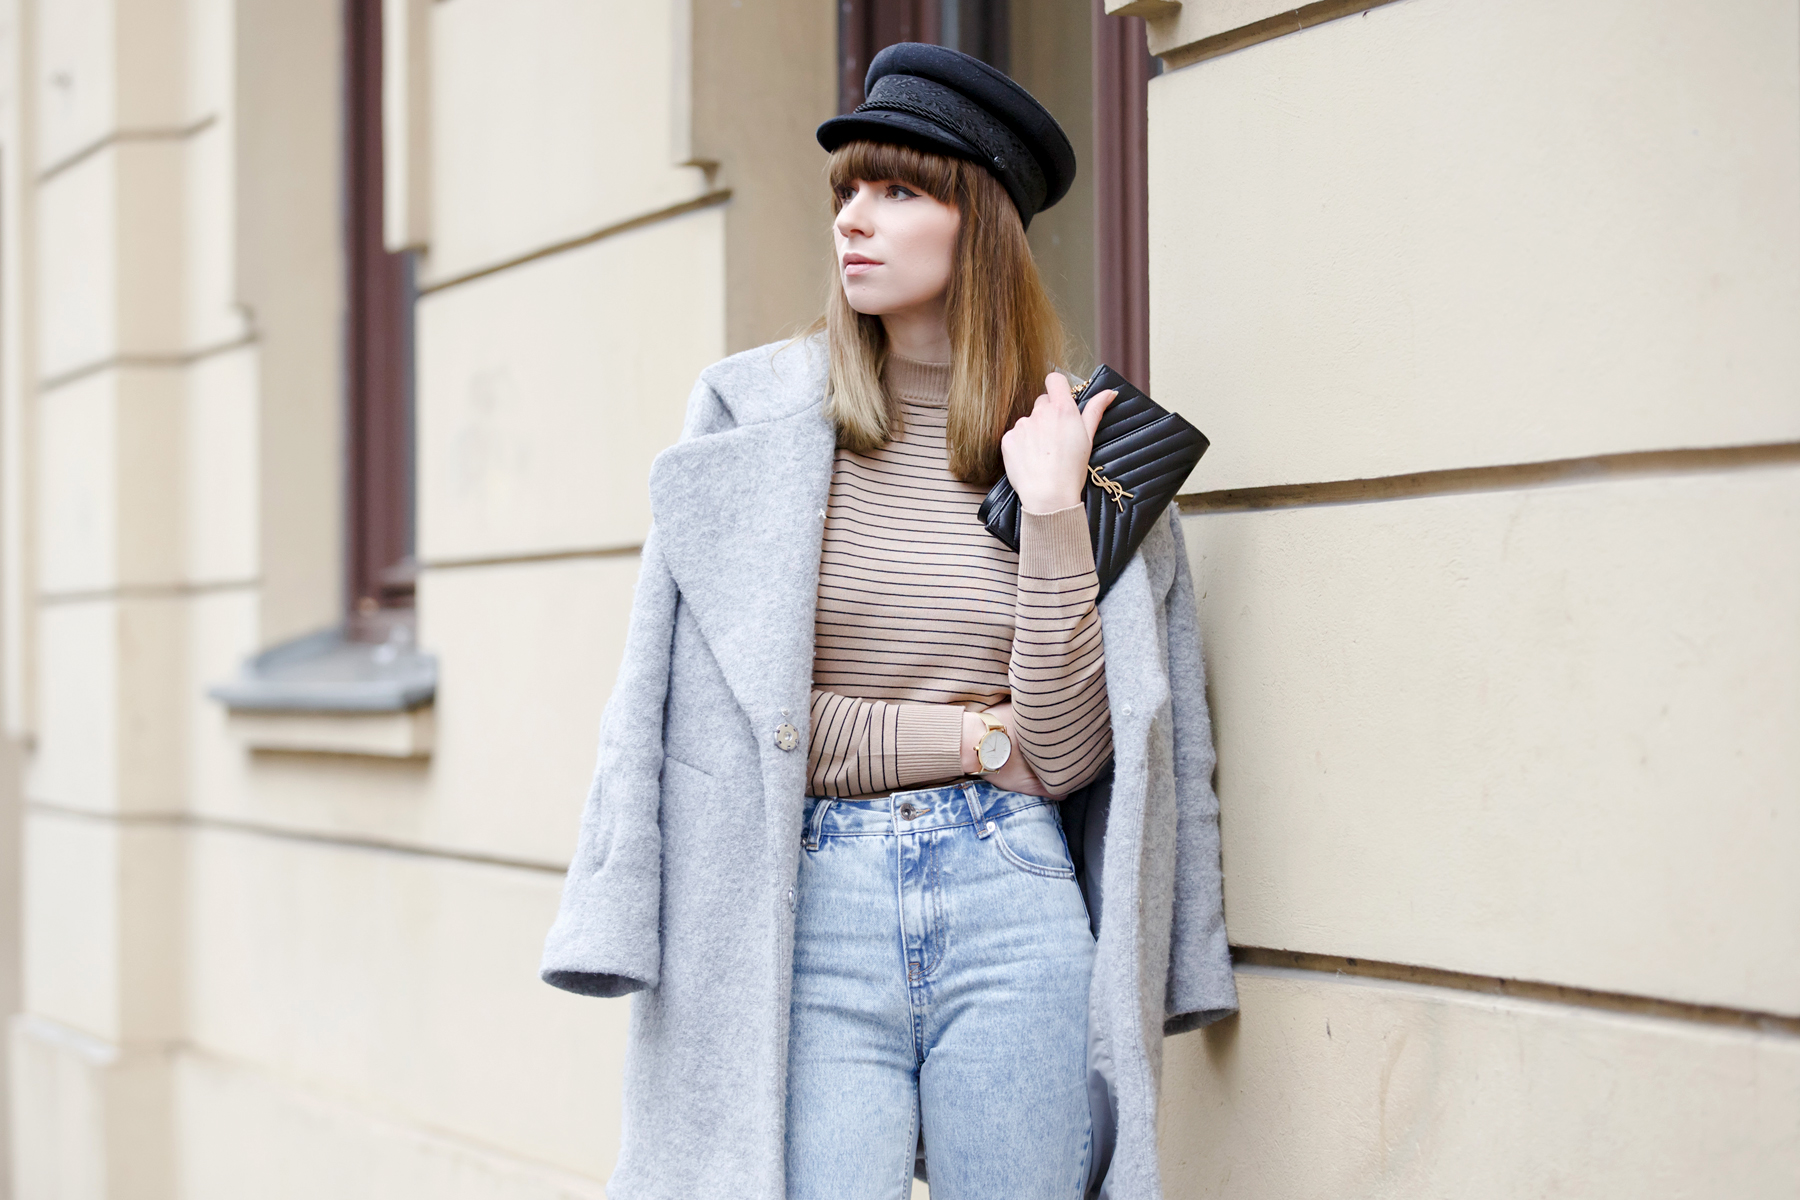 stripes denim 80s french hat parisian parisienne style stripe brown heels sam edelman ysl saint laurent paris coat chic bangs brunette modeblog cats & dogs blog ricarda schernus fashionblogger germany 3